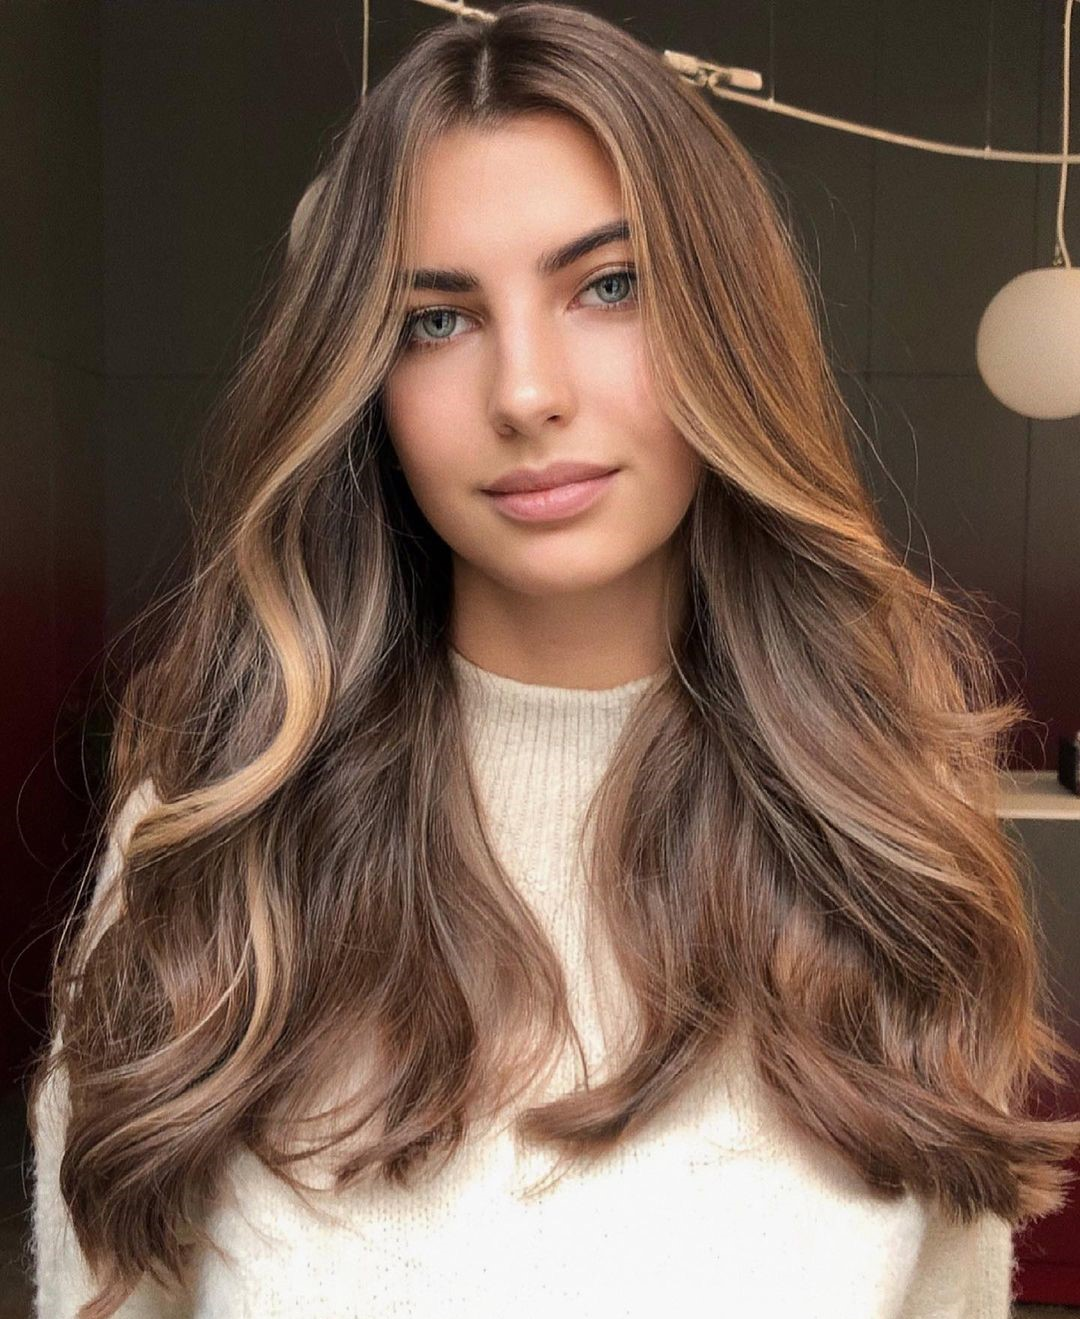 Brown Hair with Blonde Front Highlights